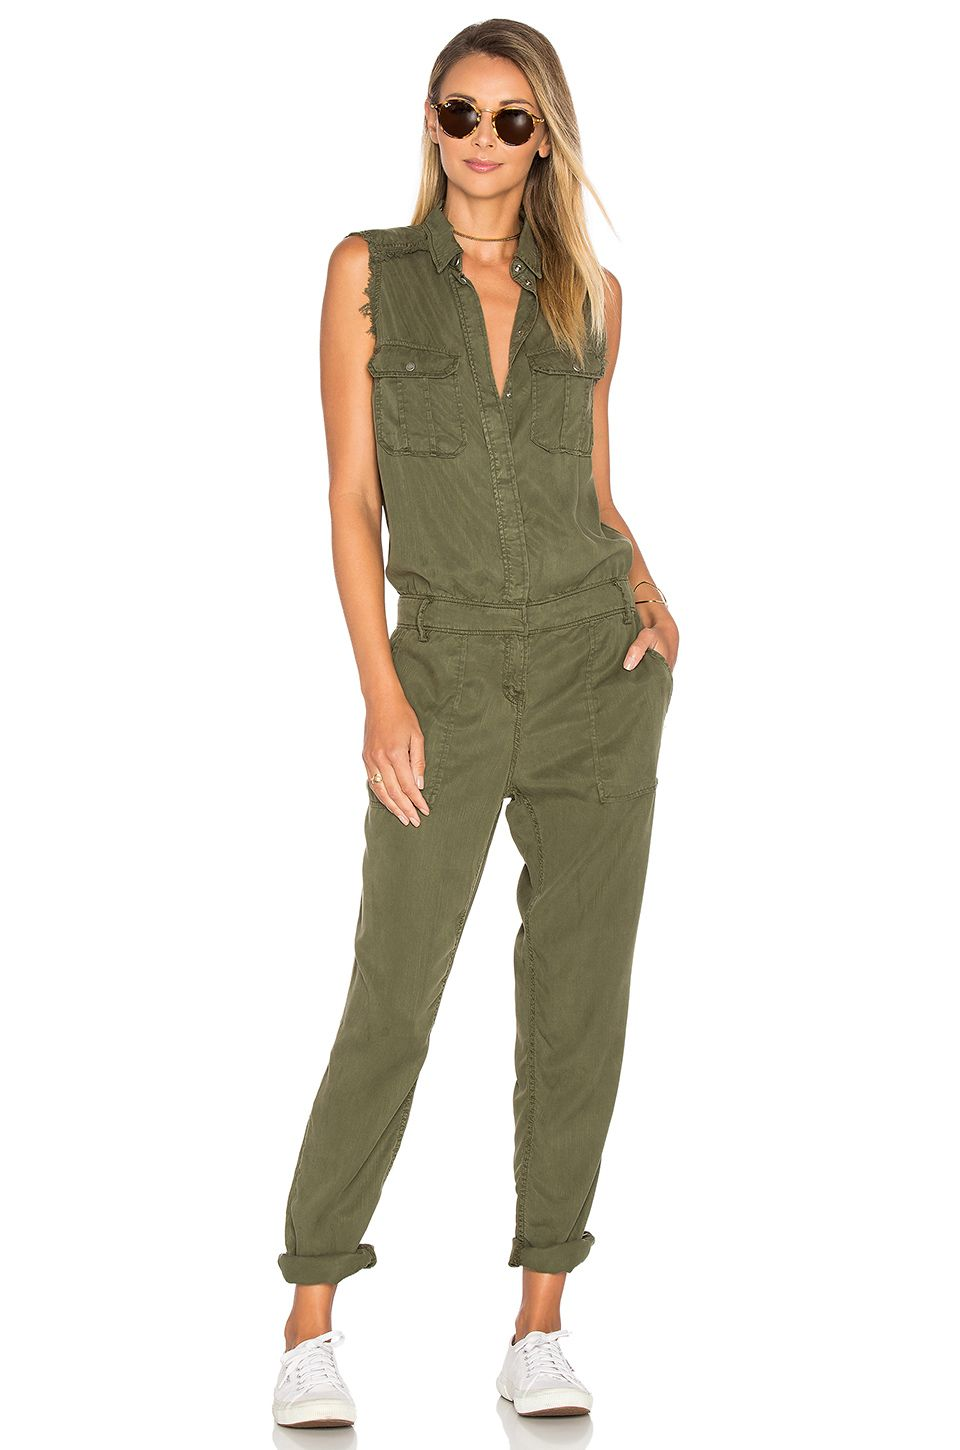 3b928b2a0f77 Etienne Marcel Sleeveless Jumpsuit in Military